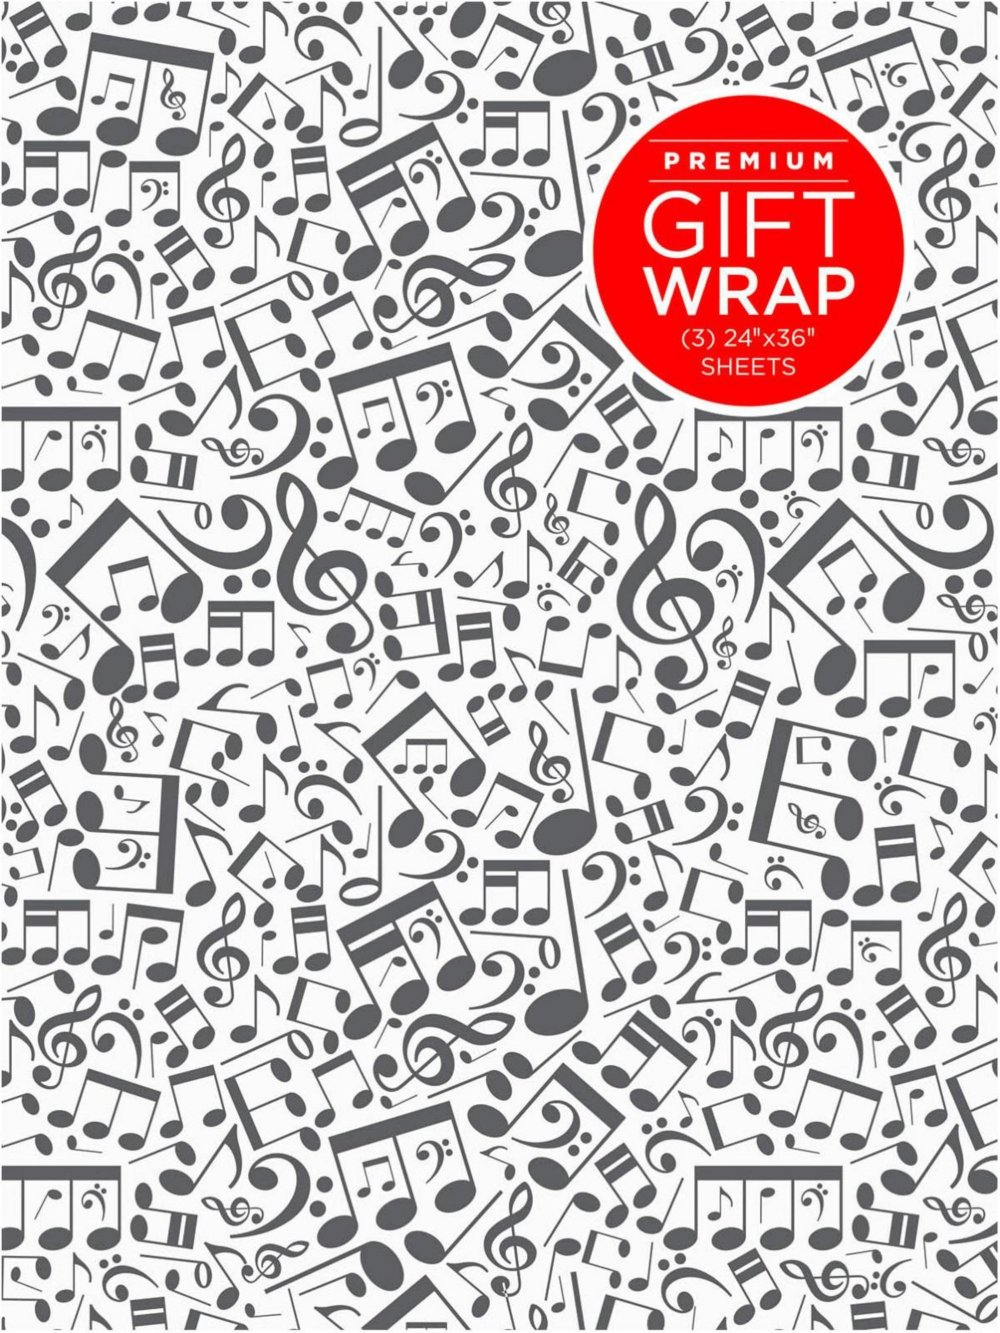 Hal Leonard Music Notes Wrapping Paper